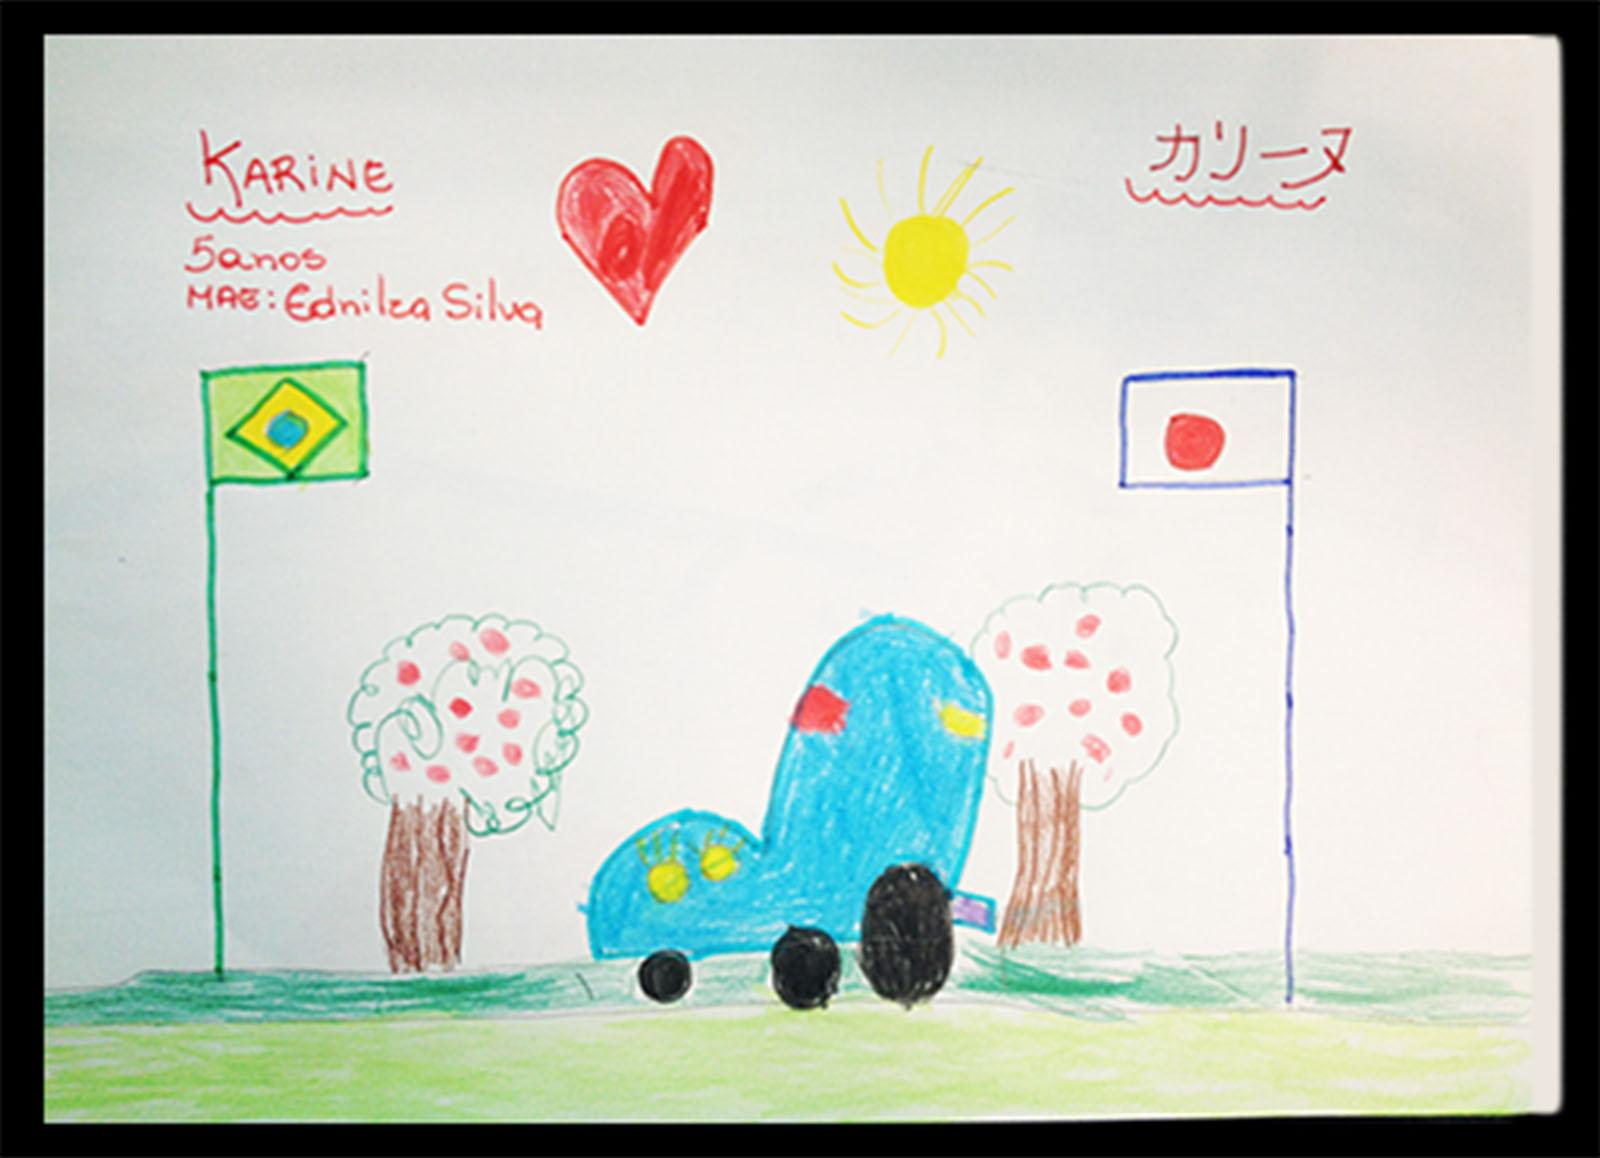 Nissan Concept Cars Made From Kids Drawings Are Awesome